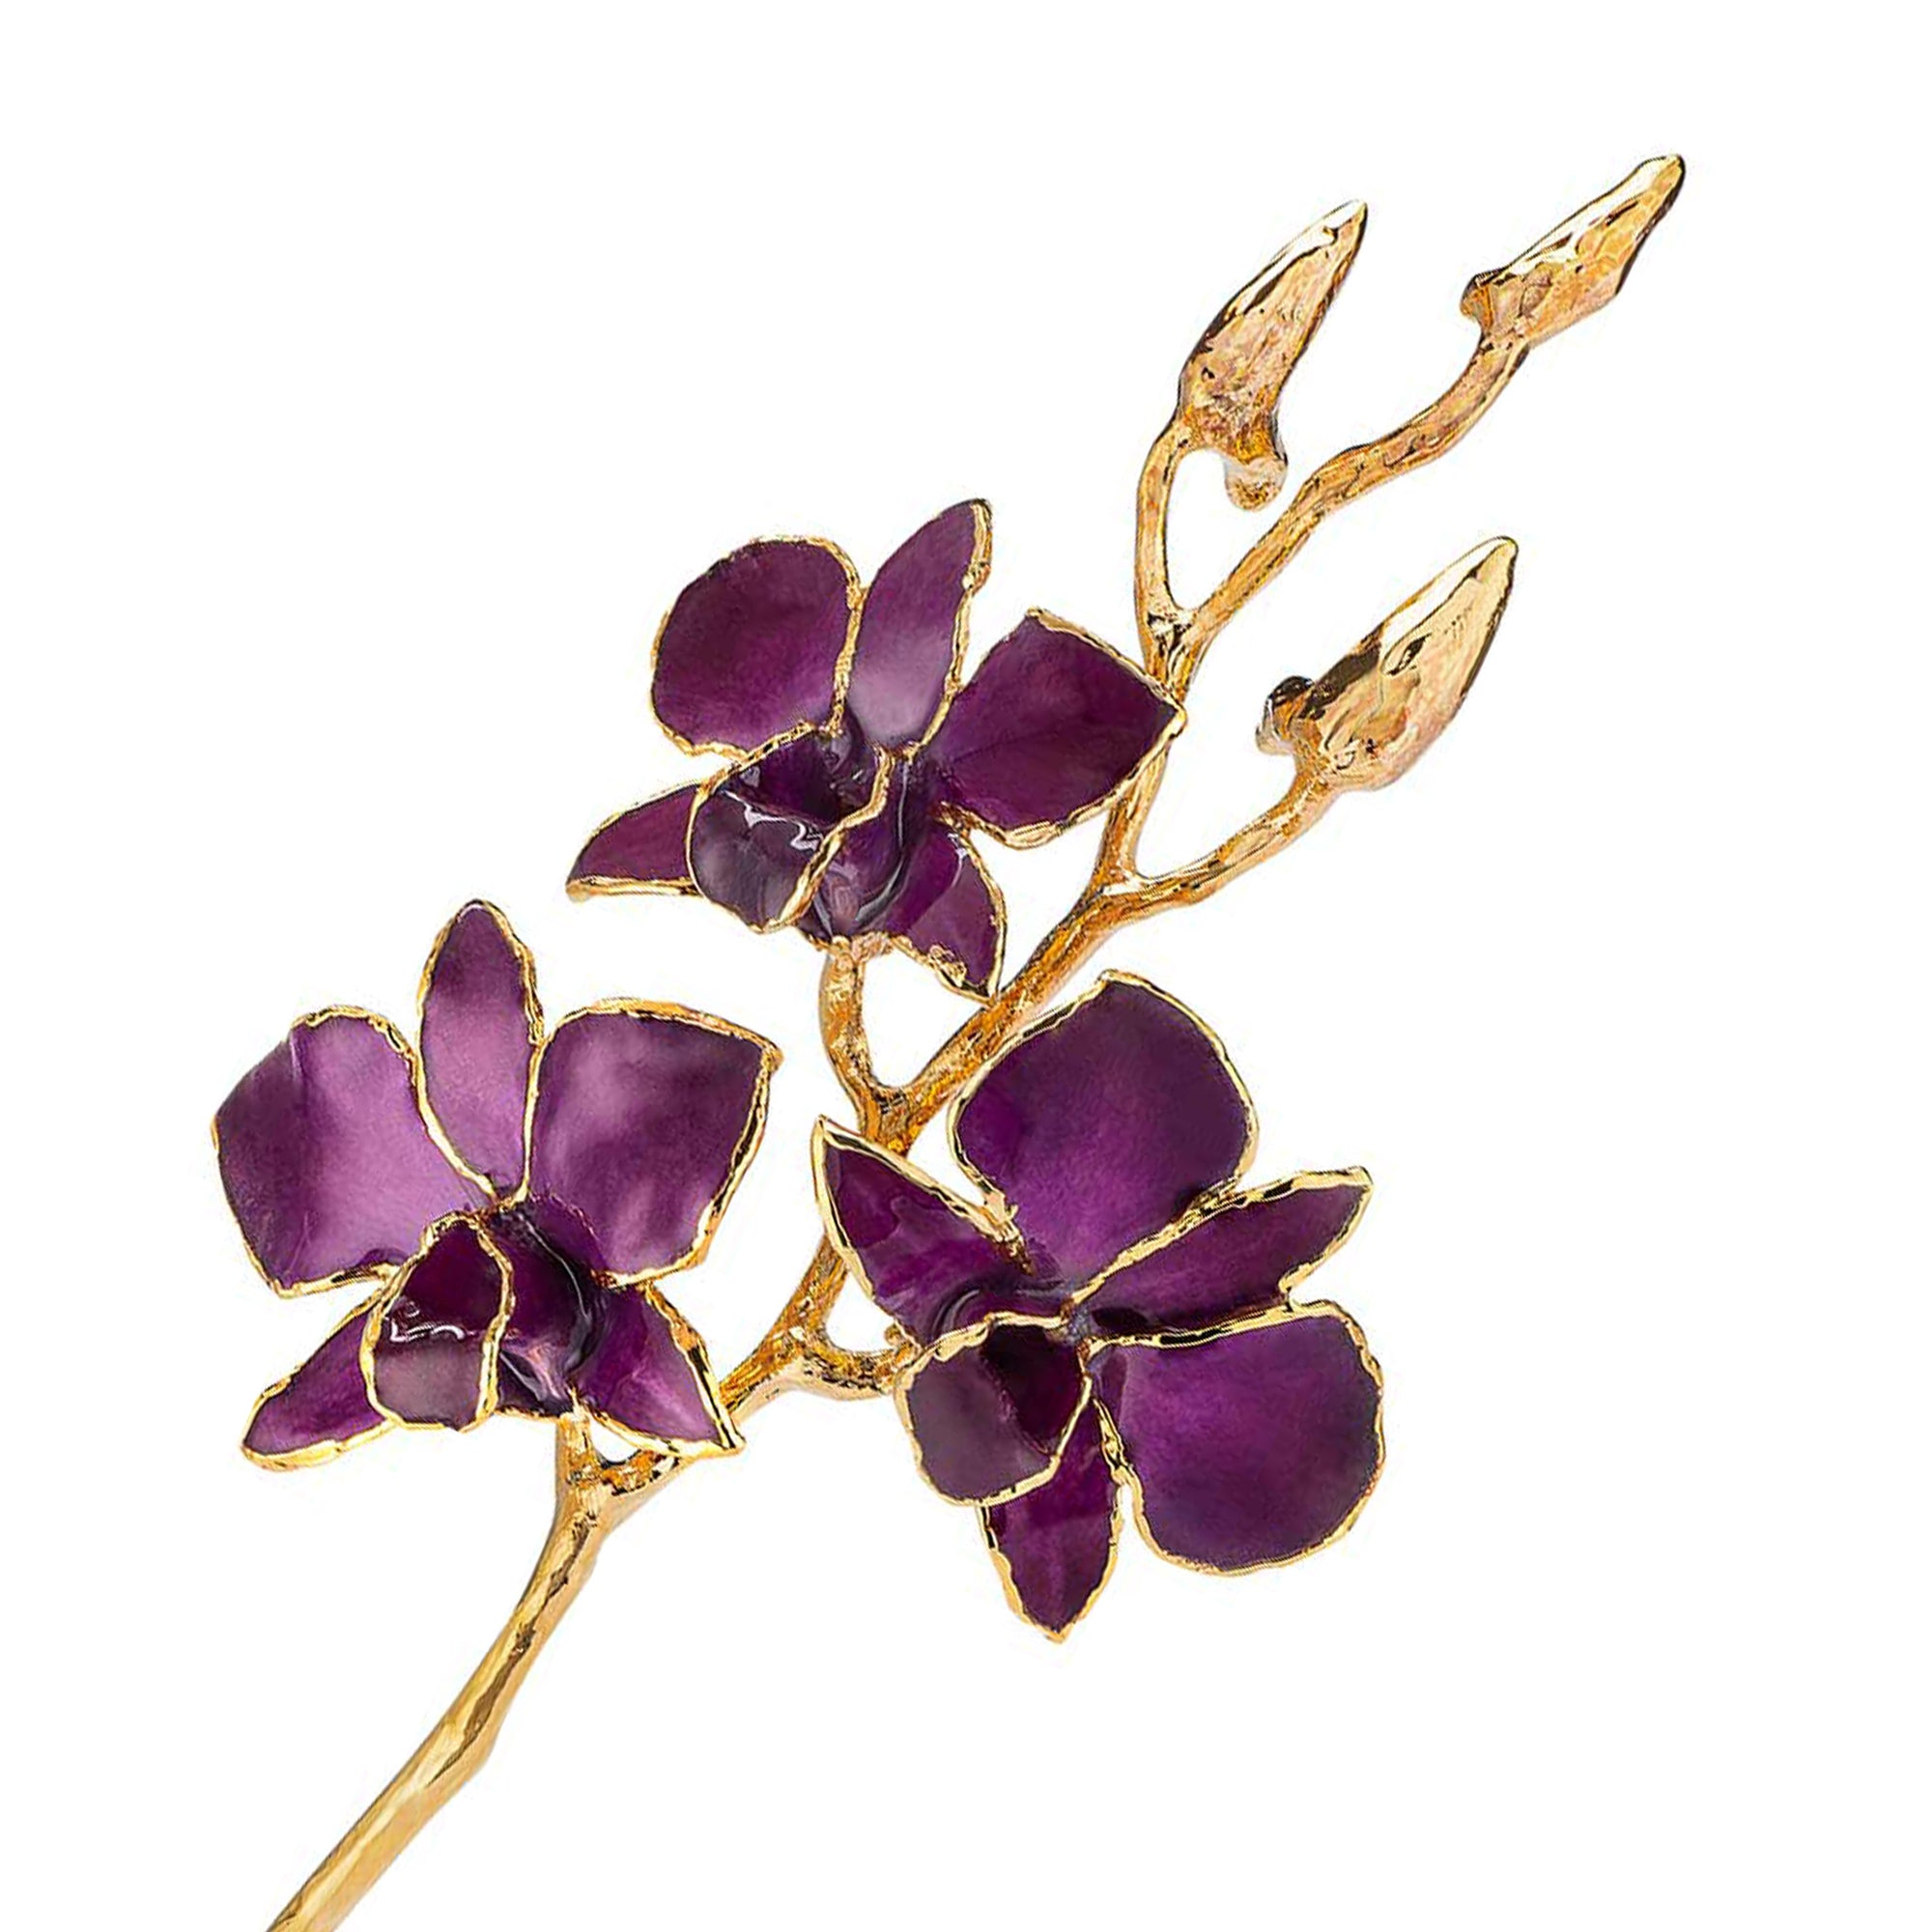 24K Gold Dipped Orchid in Purple view of gold stem and flowers